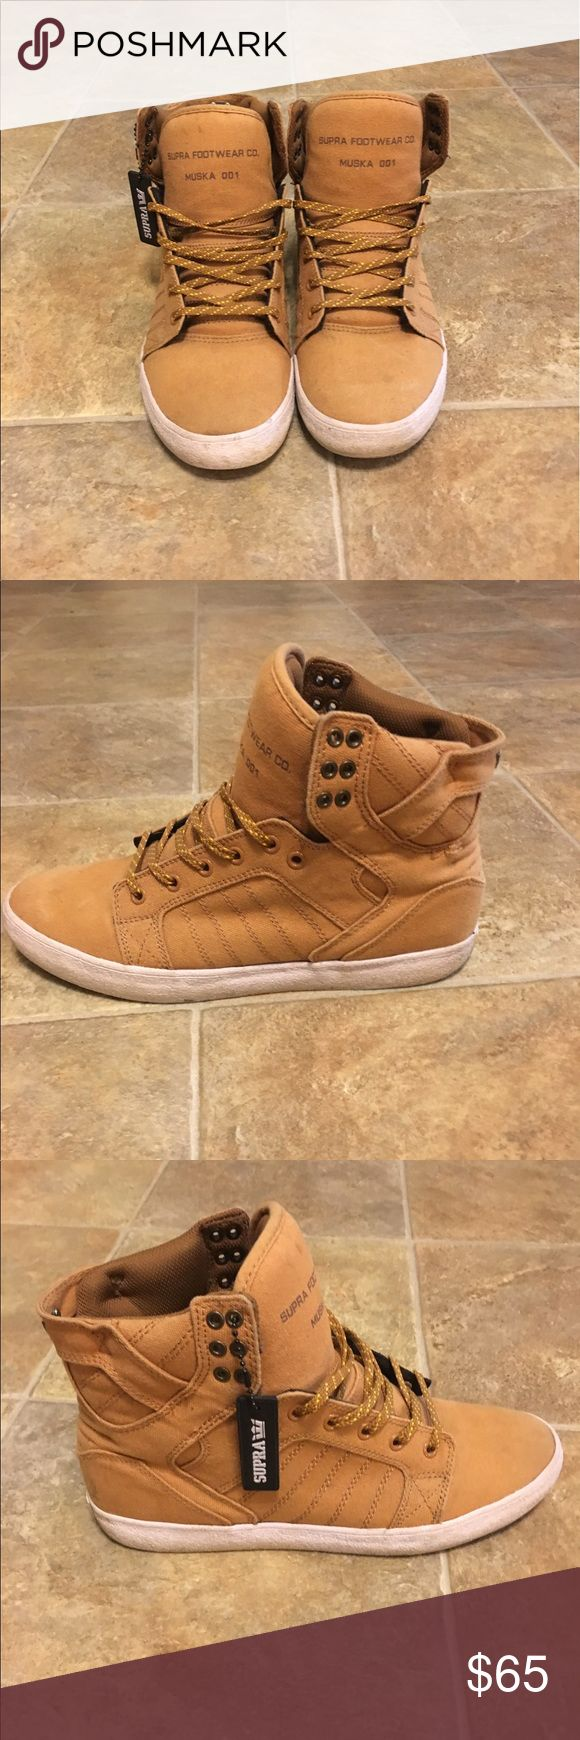 Supra Muska 001 Skytops Decent quality, have been worn. Supra Shoes Sneakers